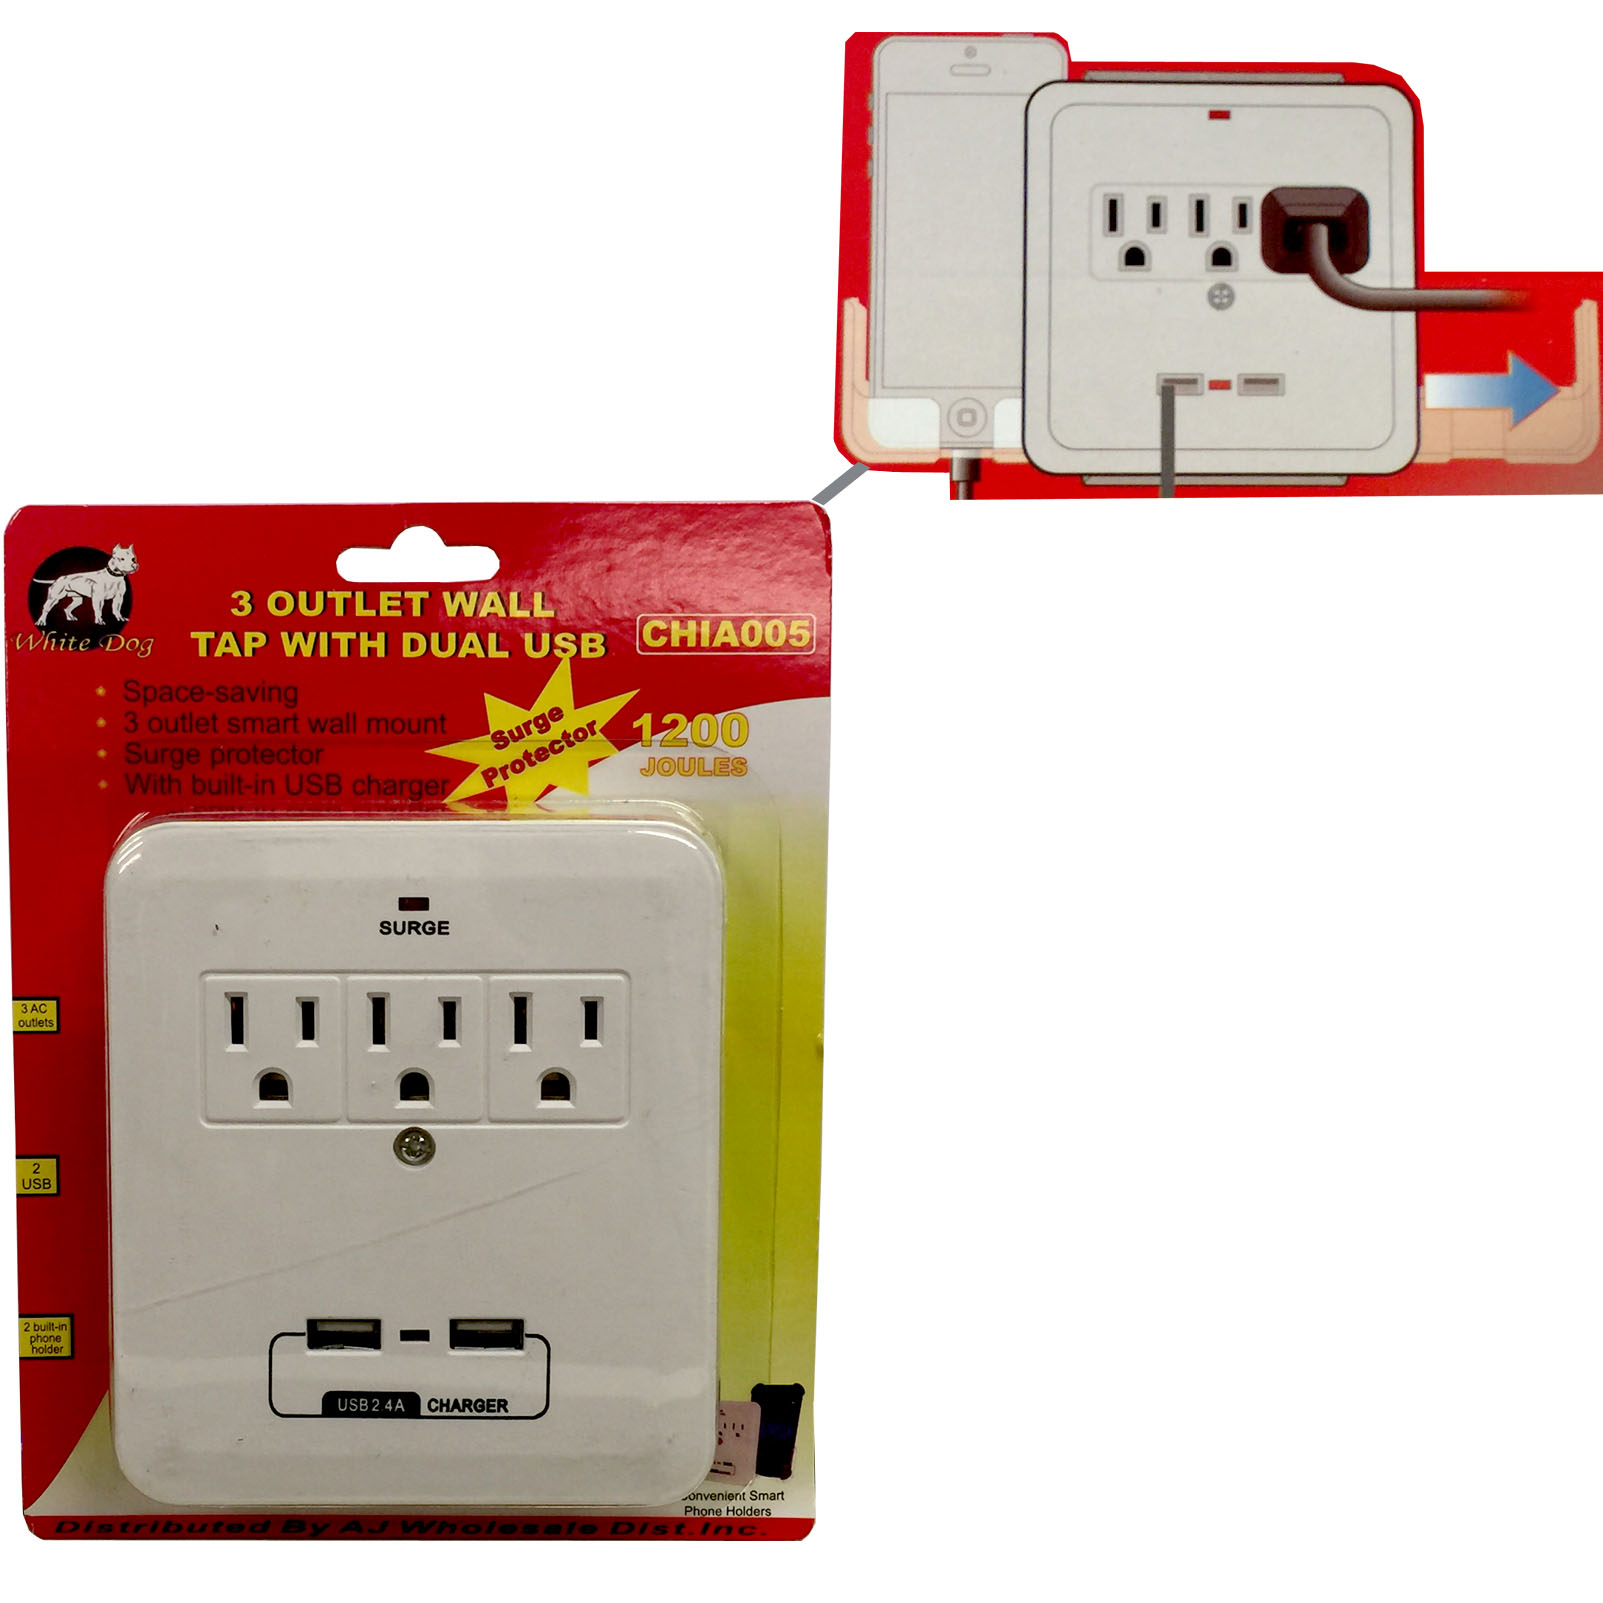 AJTools -3 OUTLET SURGE PROTECTOR WITH USB PORTS